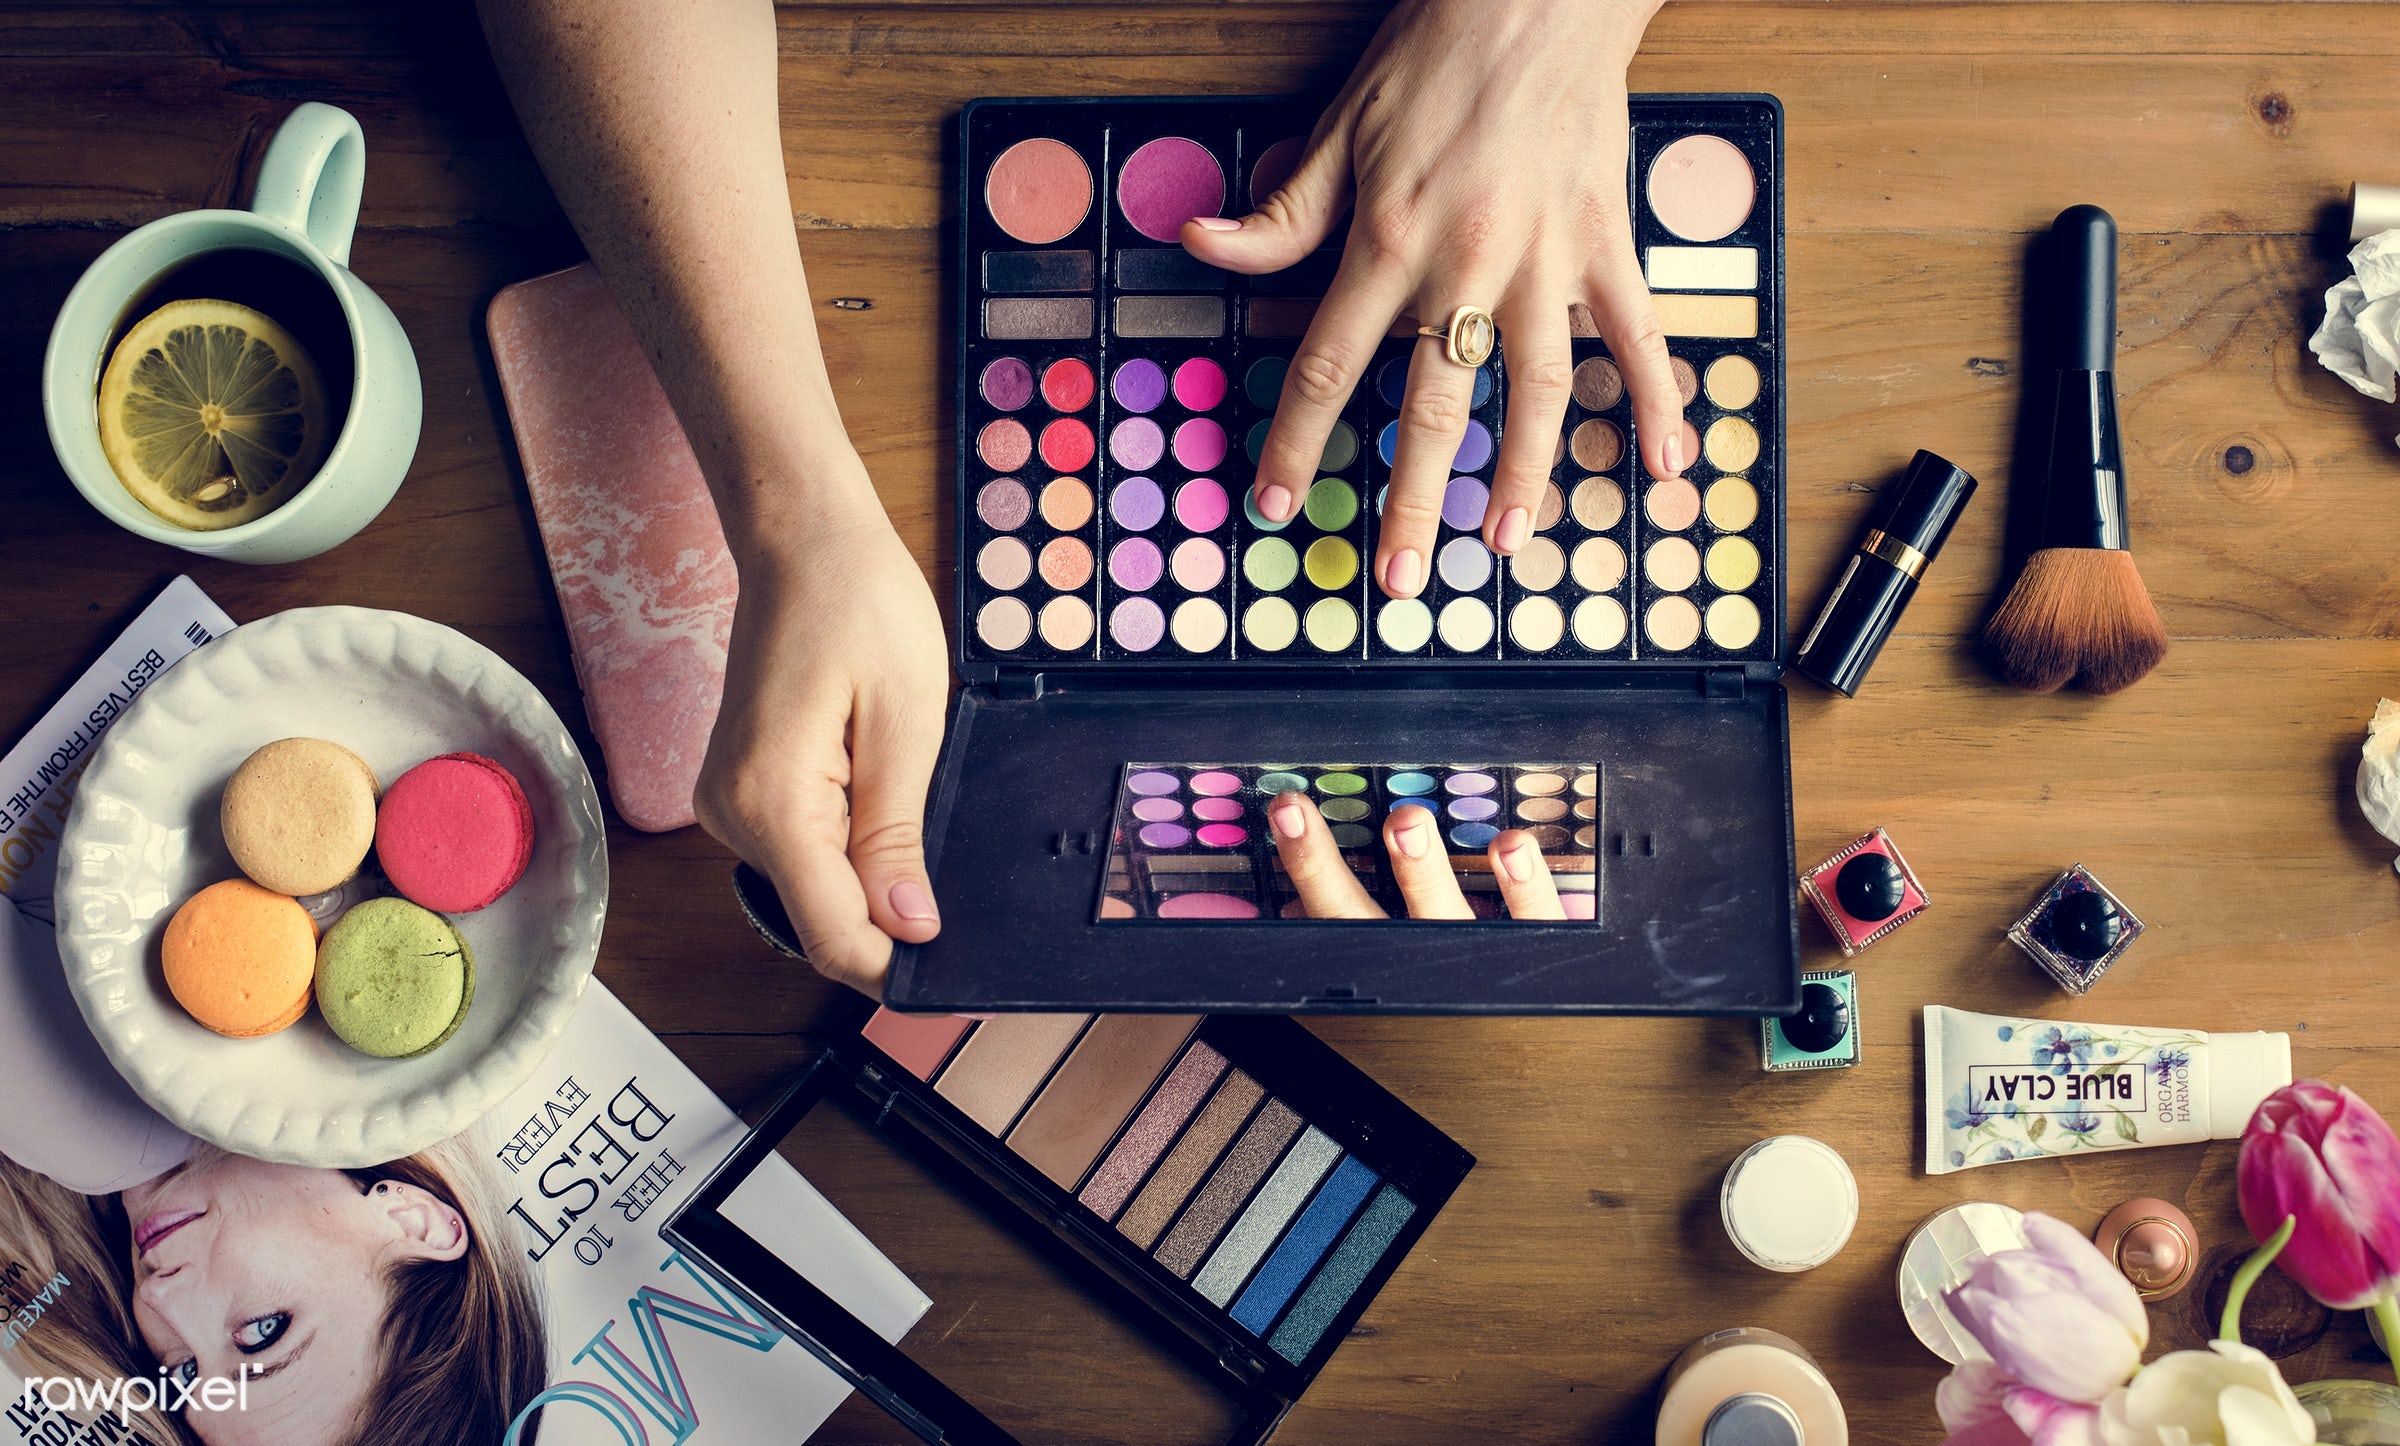 cosmetic, accessories, adult, apply, attach, attached, beautiful, beauty, blush, brushes, care, collection, colors,...